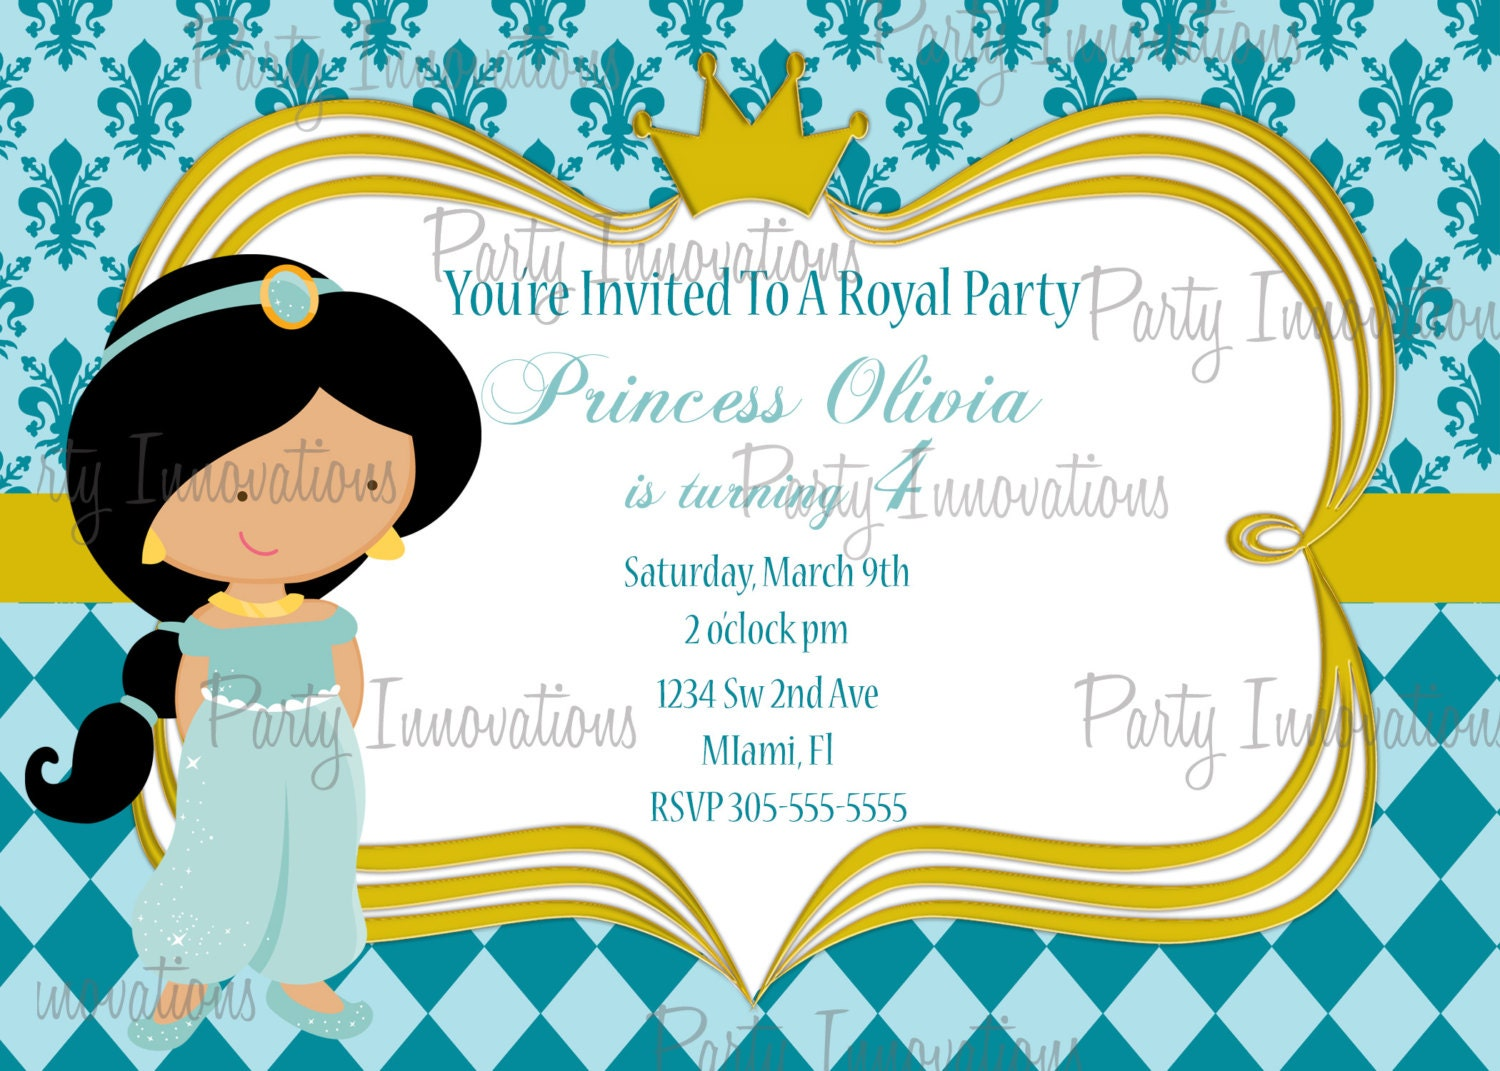 printable princess jasmine birthday party invitation plus printable princess jasmine birthday party invitation plus blank matching printable thank you card 🔎zoom